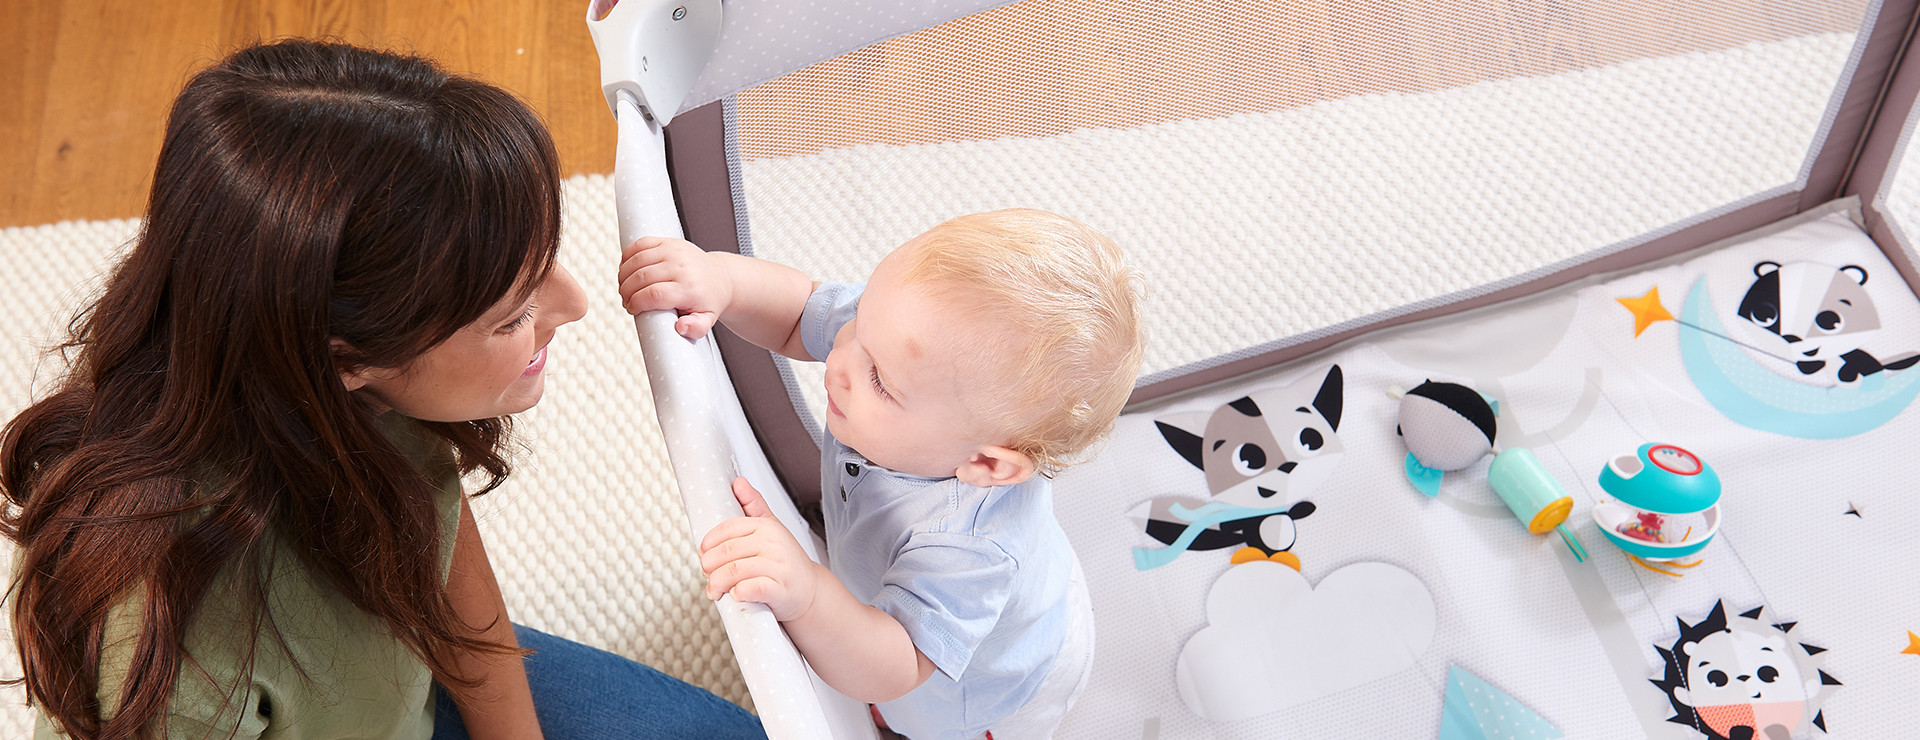 Larger play space is perfect for baby's sleep and awake time